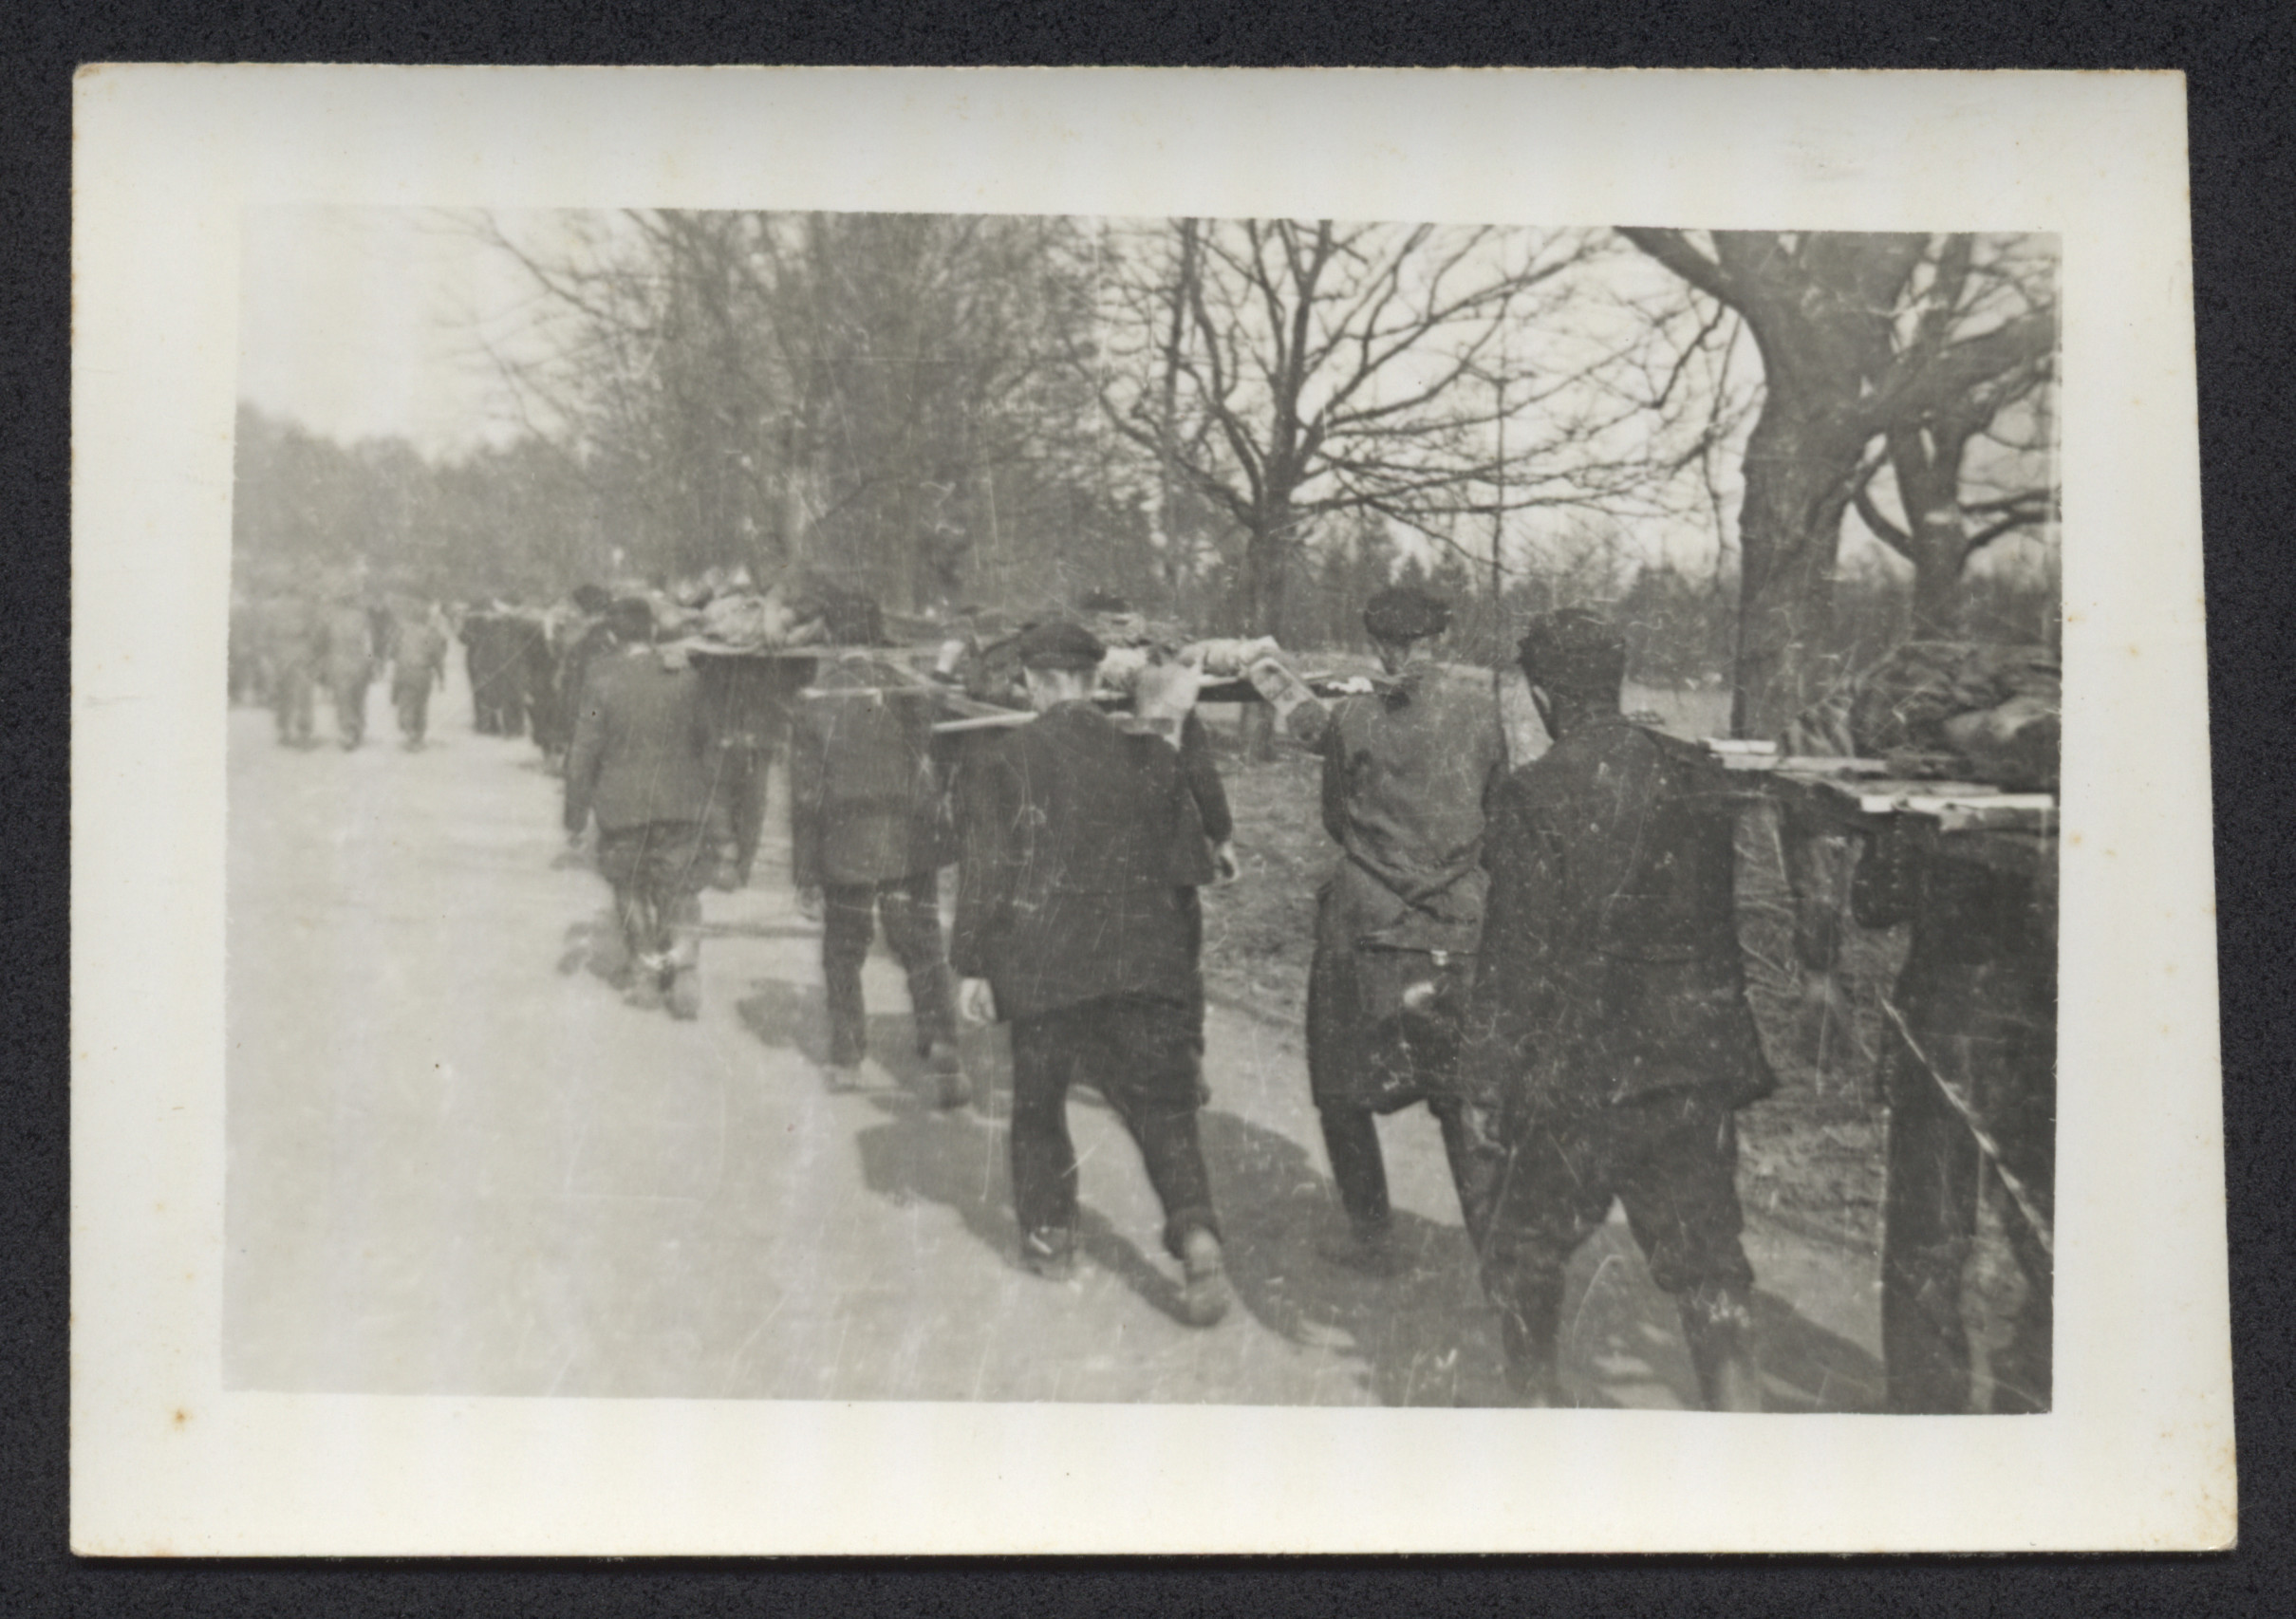 German civilians remove corpses from the Nordhausen concentration camp for burial in mass graves.